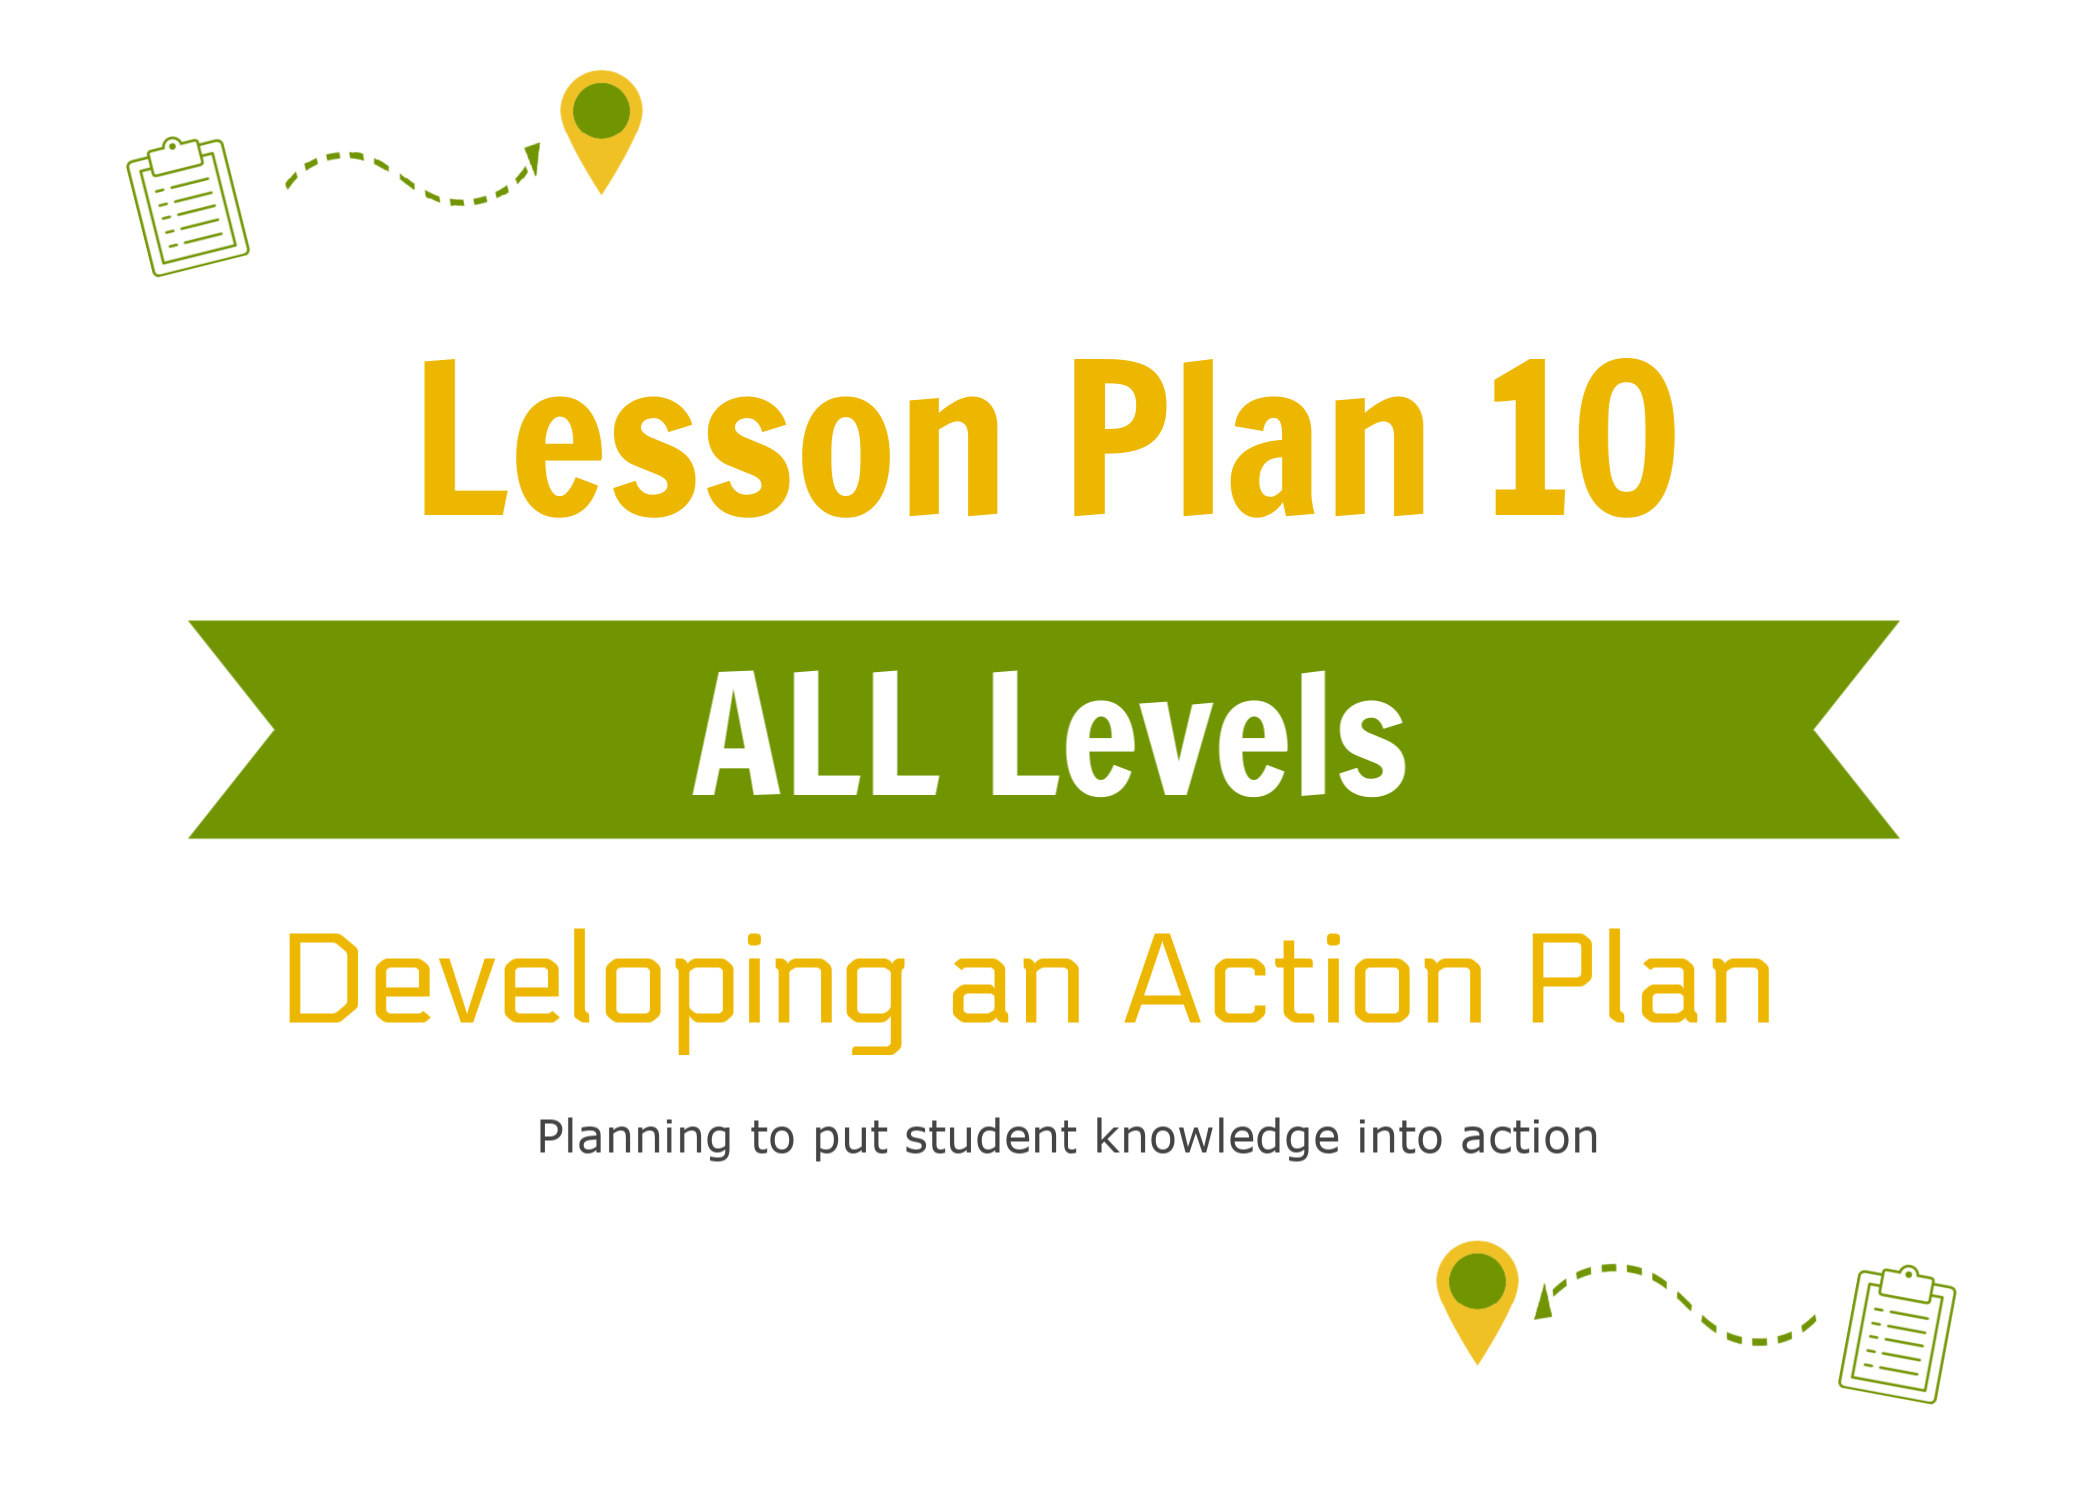 - This is a self-driven lesson suitable for all levels. Students will develop an action plan to make a change in their school and community.